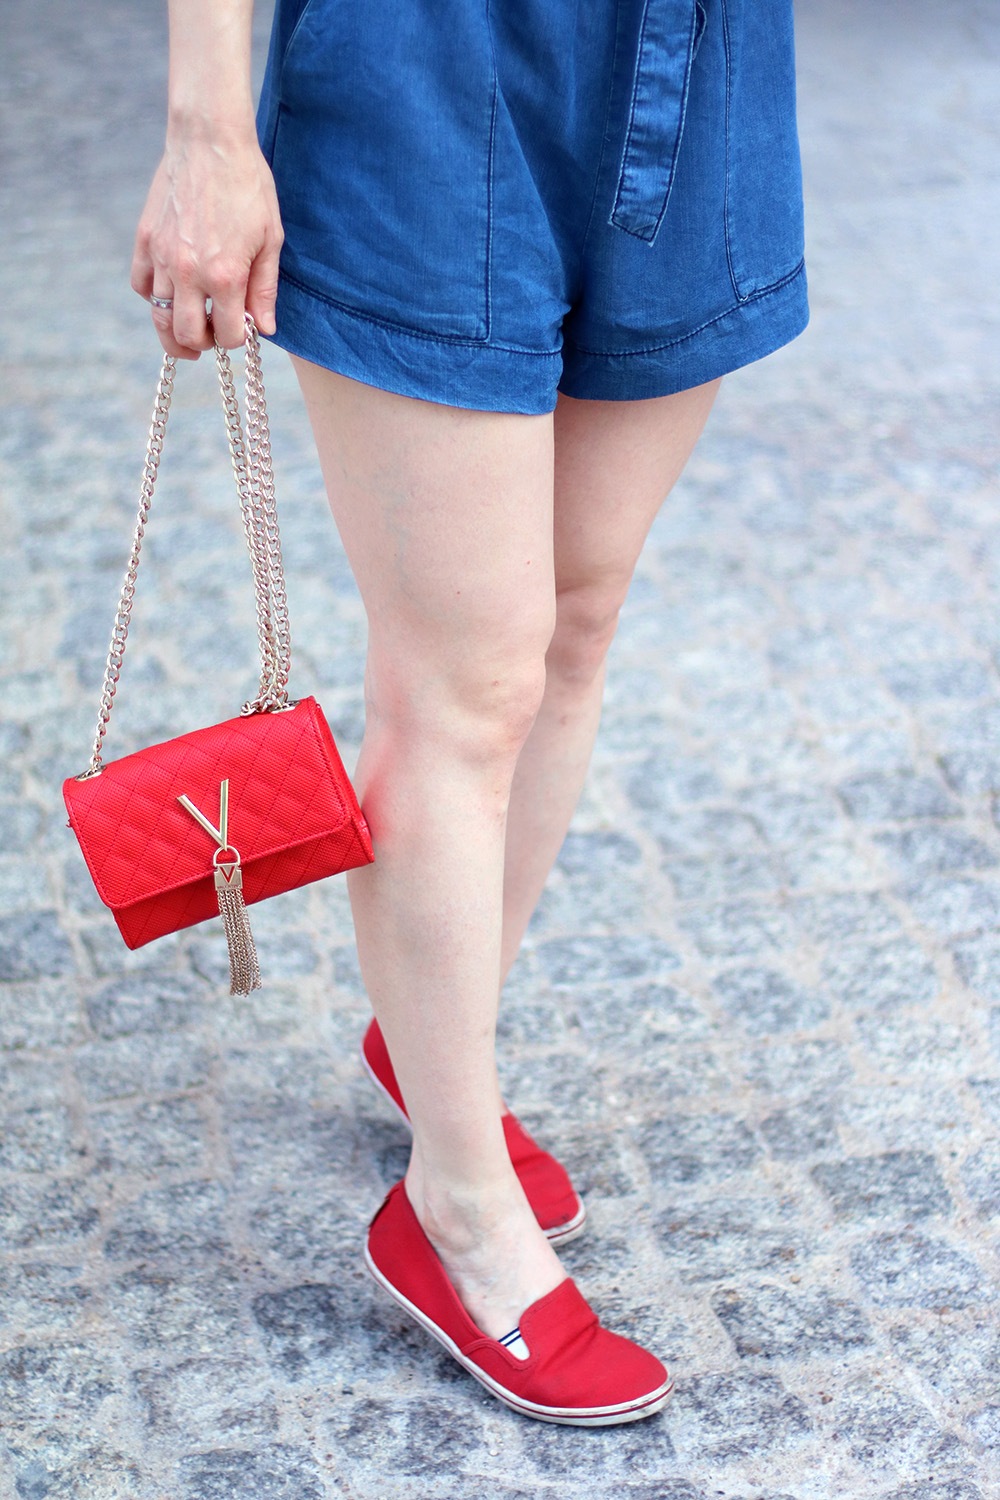 Shoes, Slippers, Red, Jeans Shorts, Pants, Summer Look, Outfit, Tips, Streetstyle, Fashion Tips, Find Your Style, Influencer, Germany, Berlin, Fashion Blog, Fashion Blog, Advance Your Style, advanceyourstyle